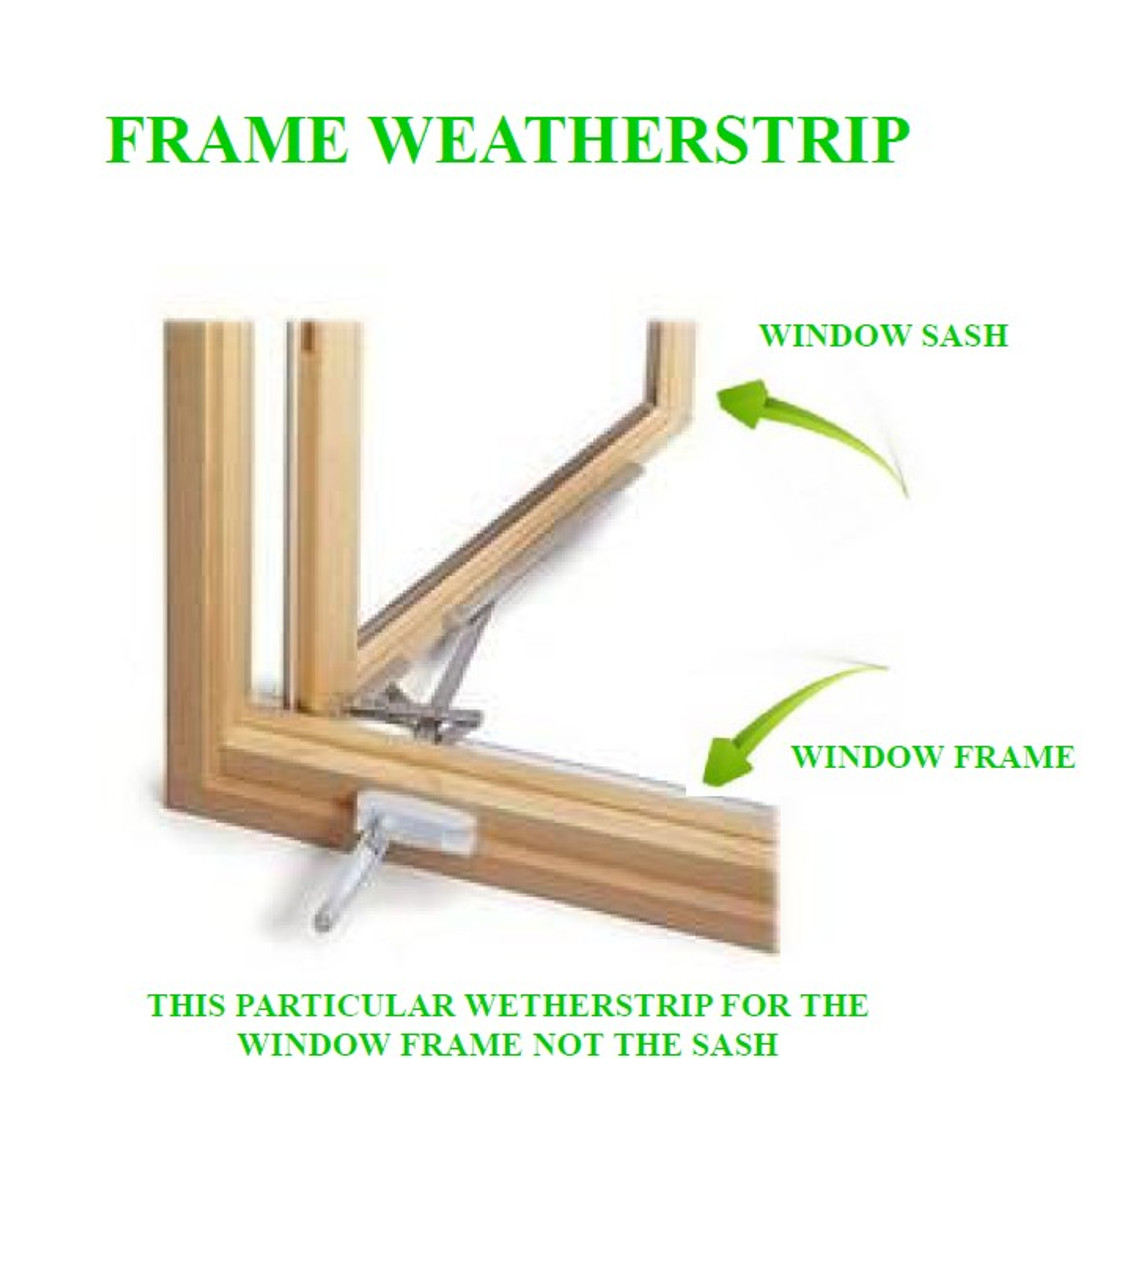 72'' pieces Casement  frame weather strip 2022589 1988 to 2006 (offered in bronze color only)